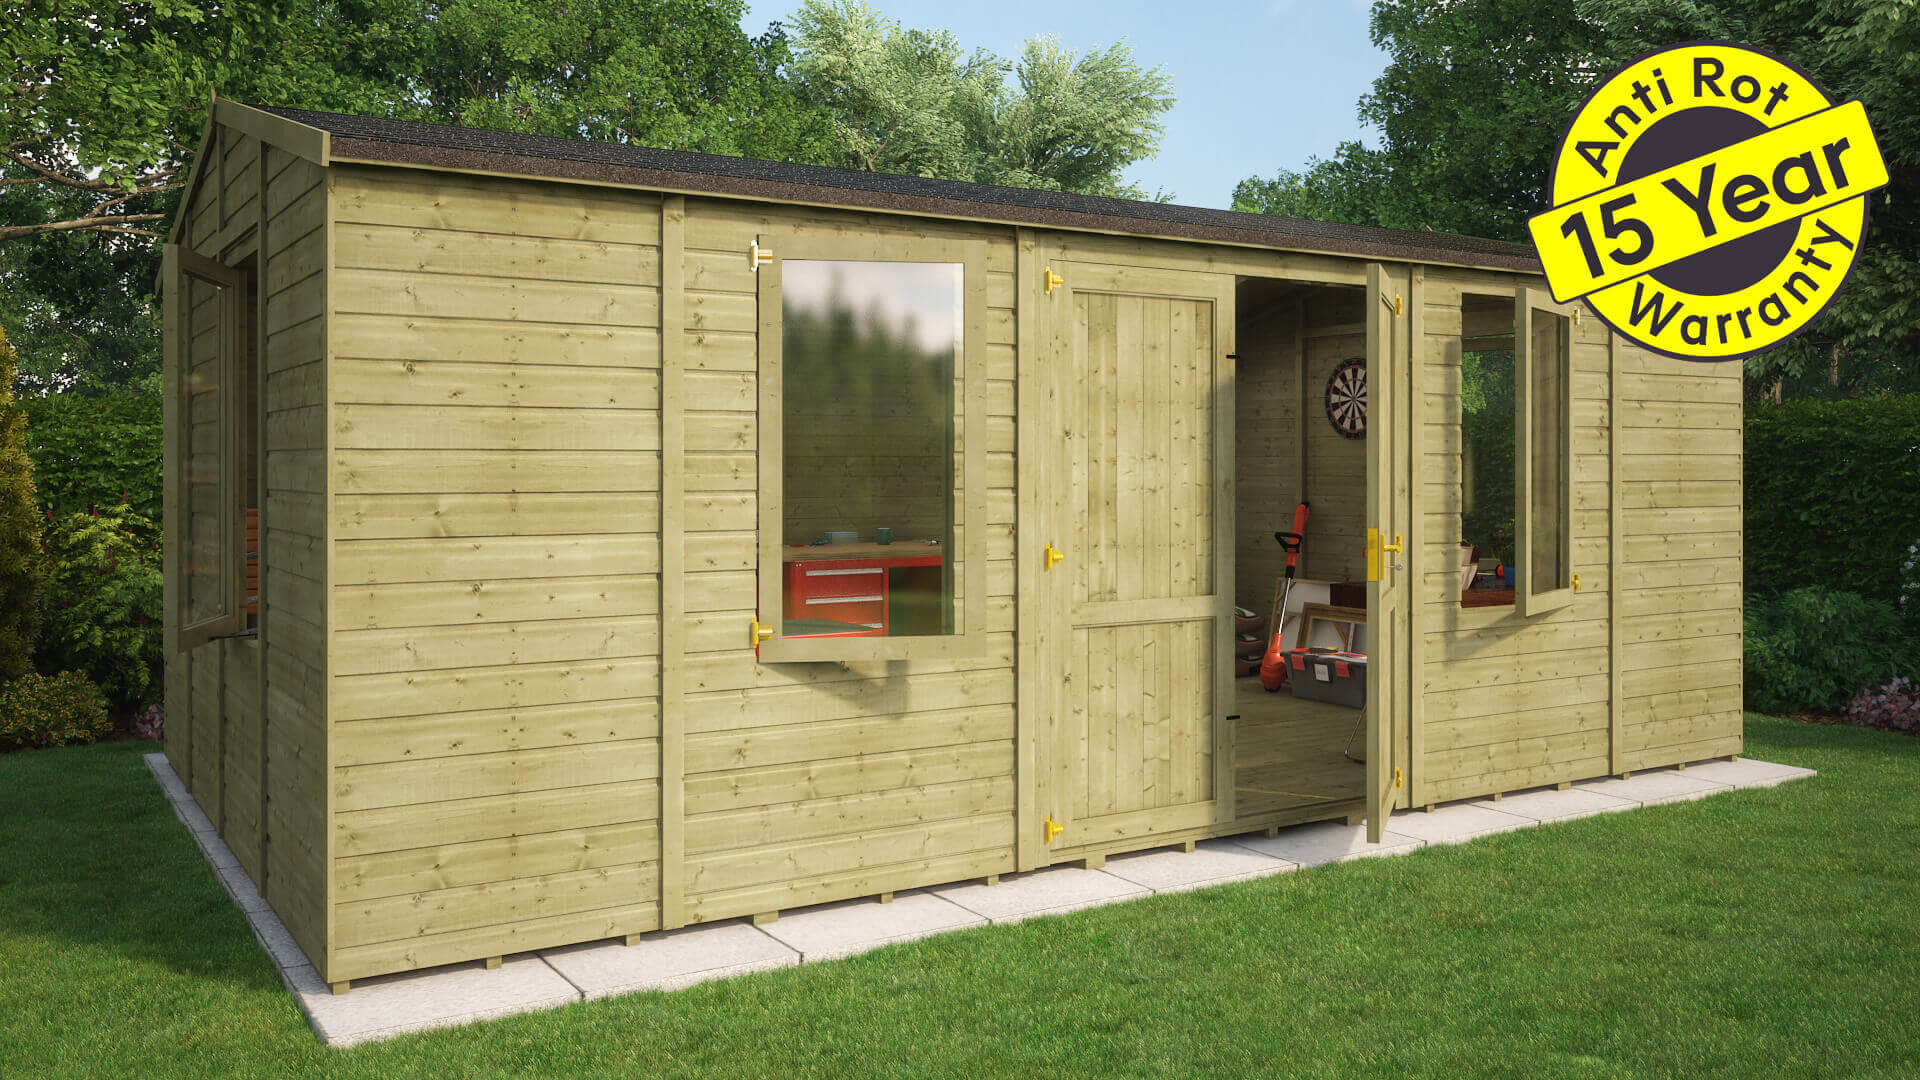 Grandmaster 20x12 central door workshop tg roof and floor pressure treated 15 year warranty